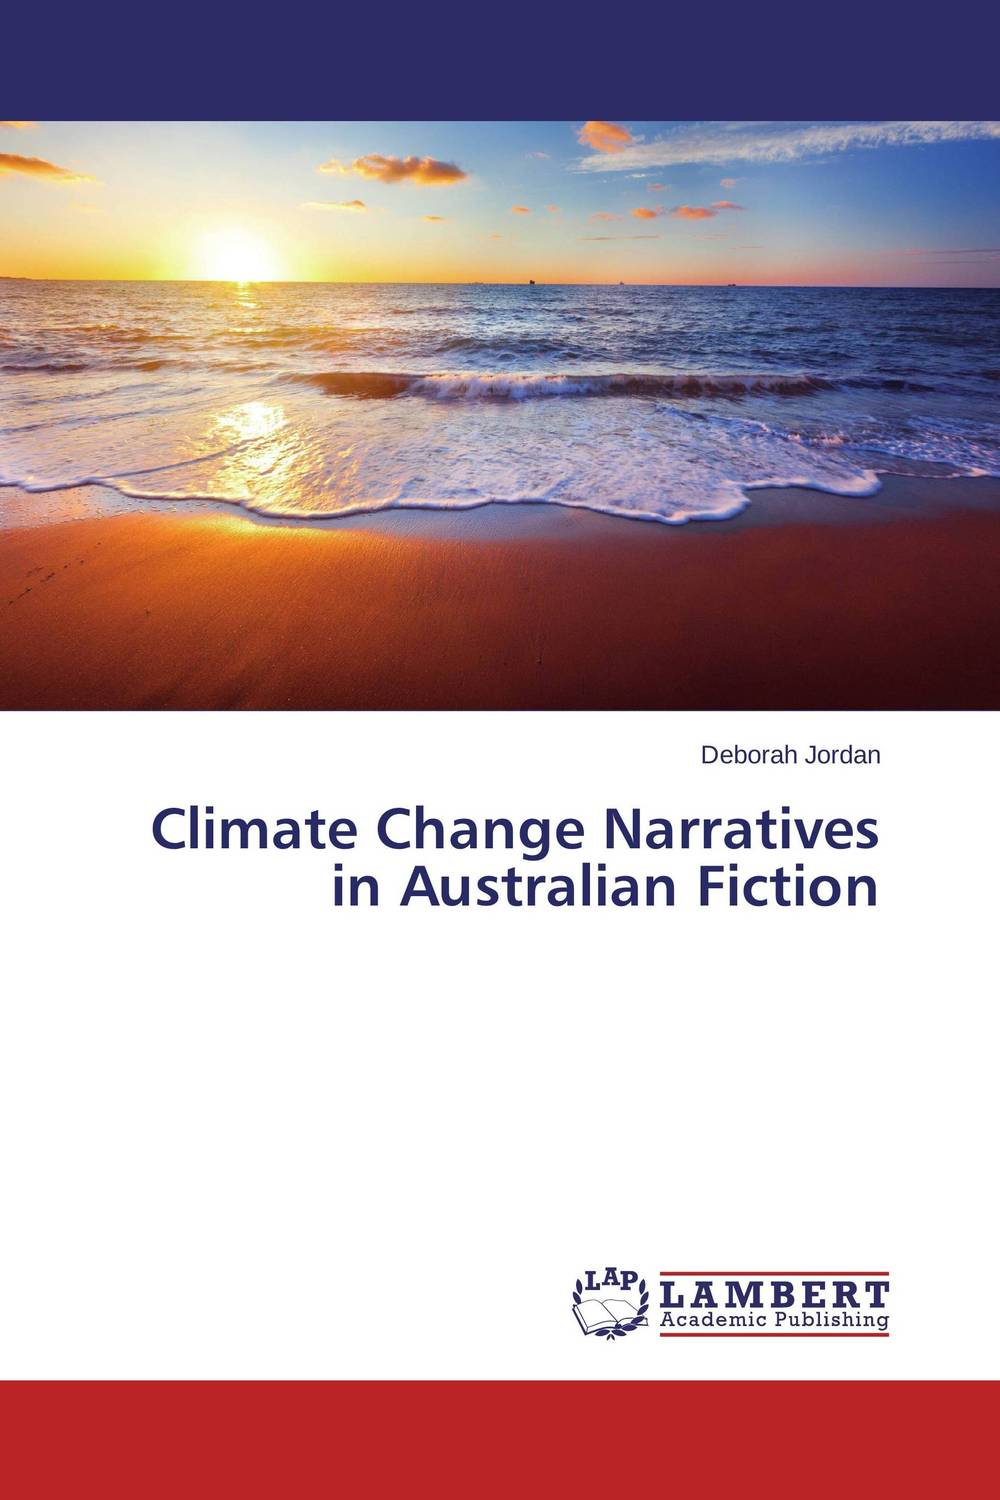 Climate Change Narratives in Australian Fiction